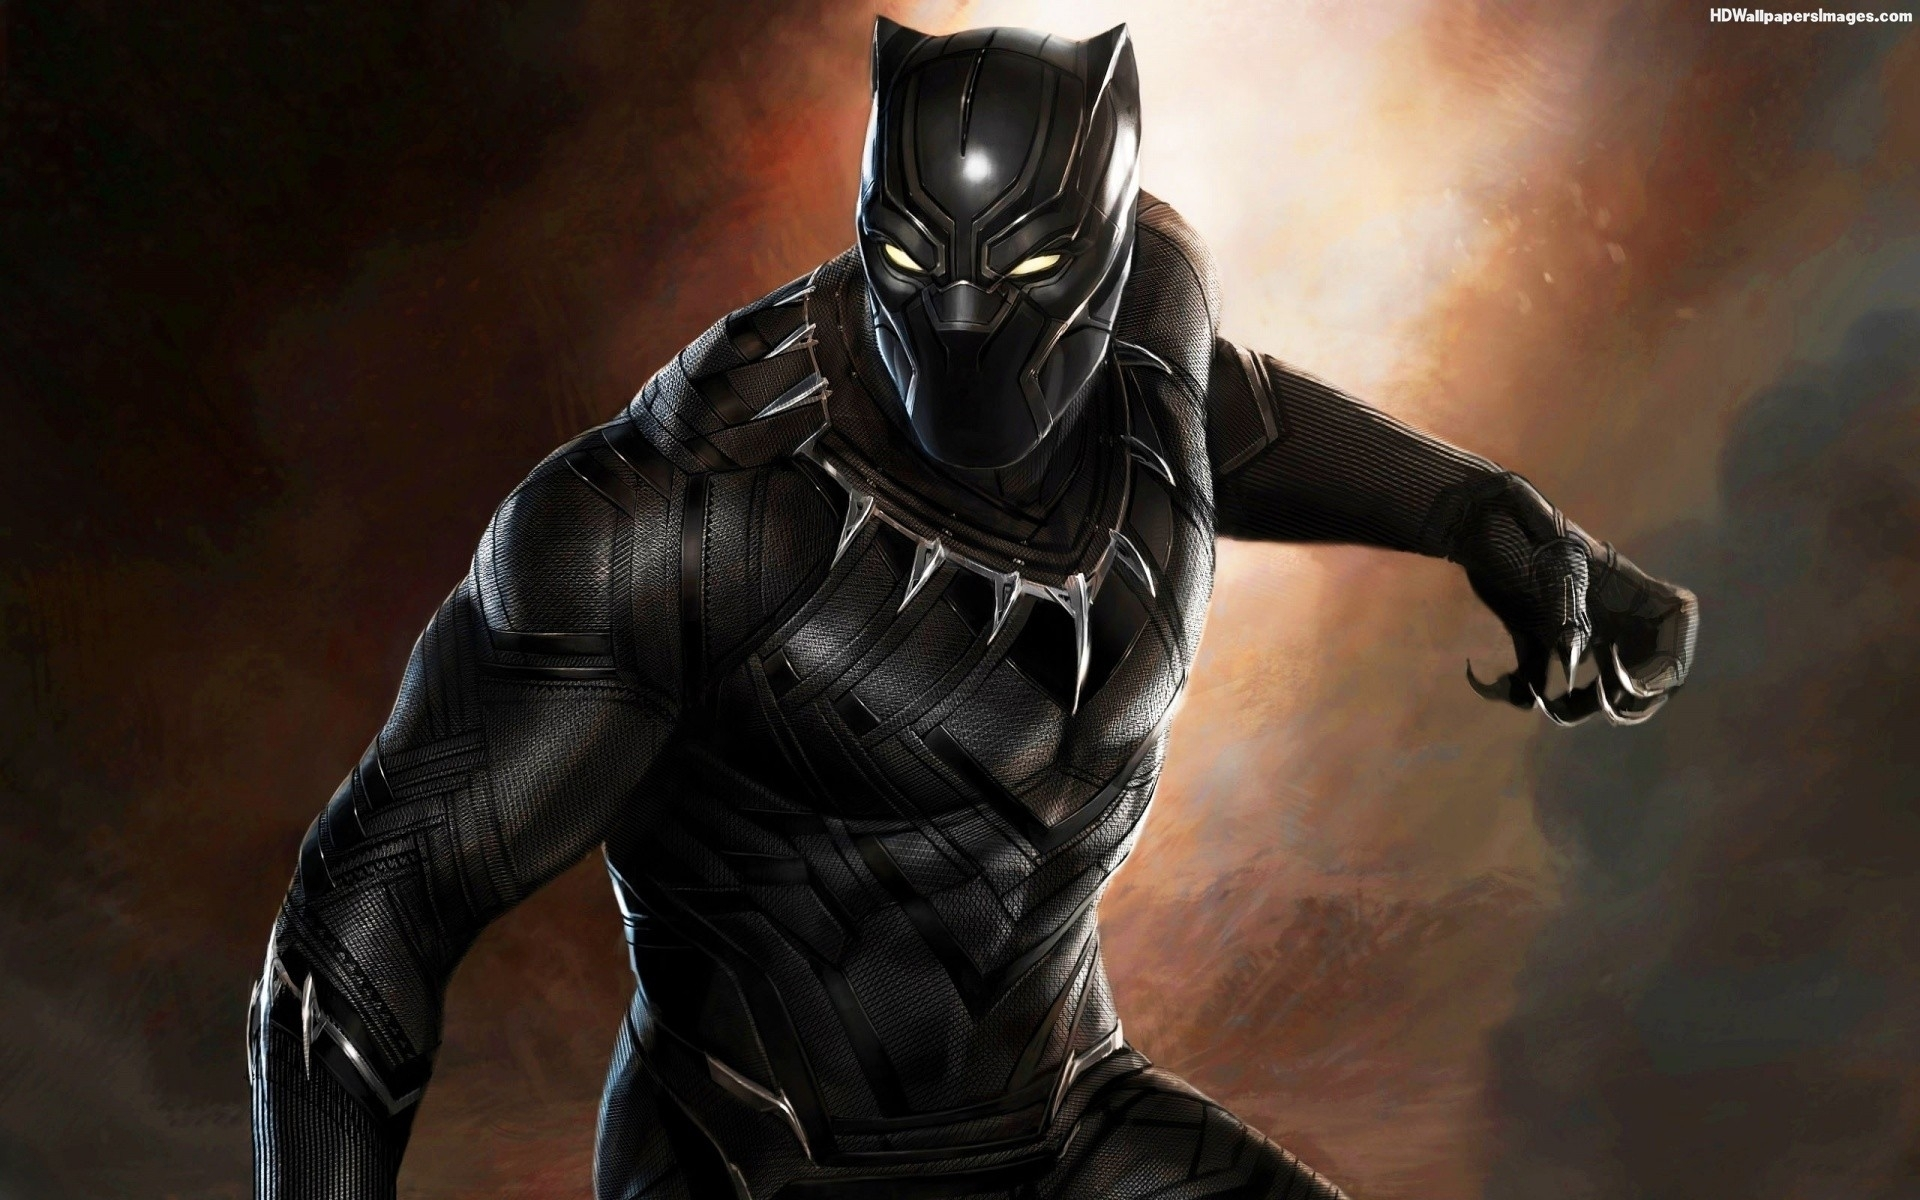 black panther wallpapers | hd wallpapers pulse